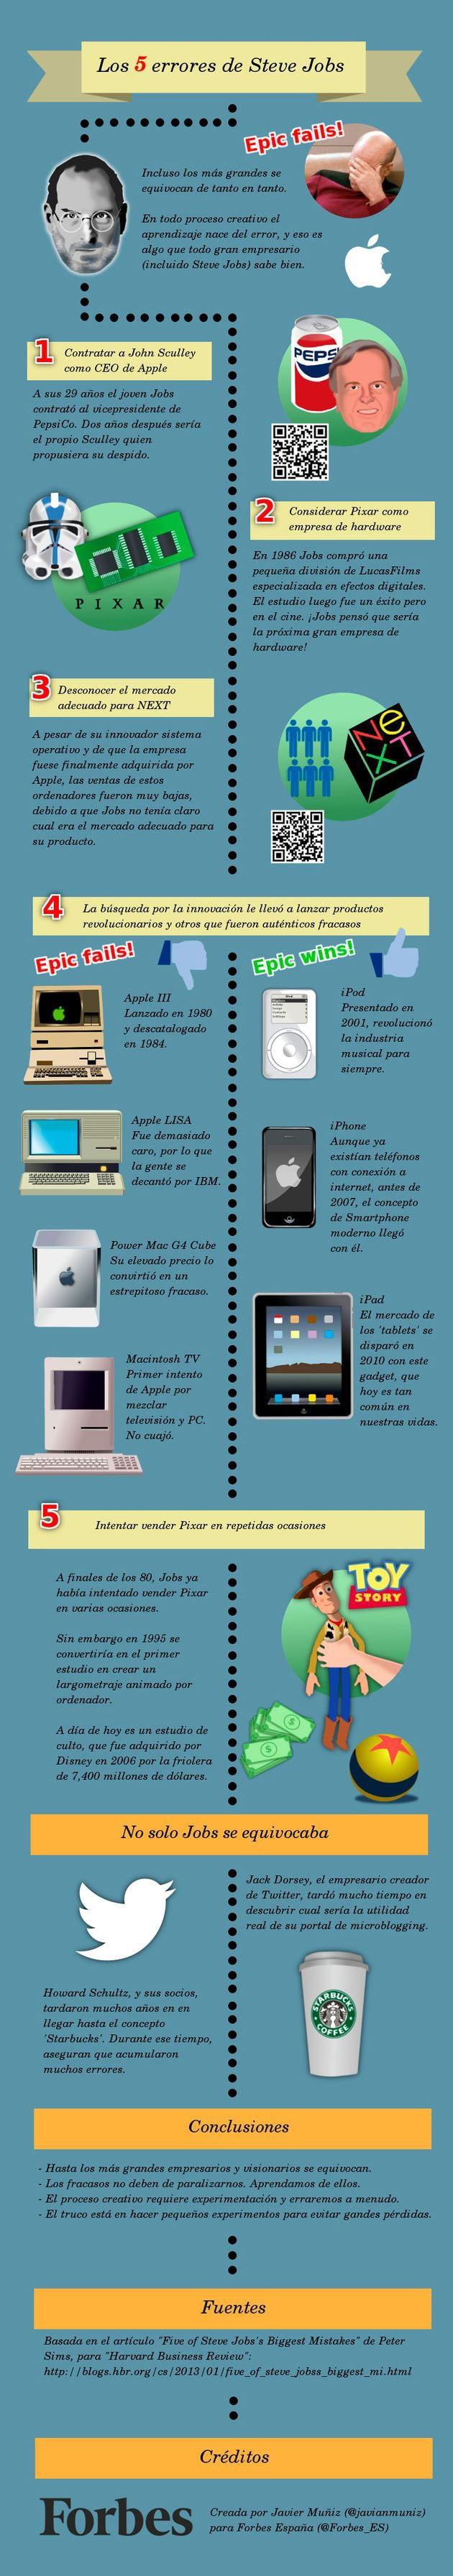 Los-cinco-errores-de-Steve-Jobs-forbes